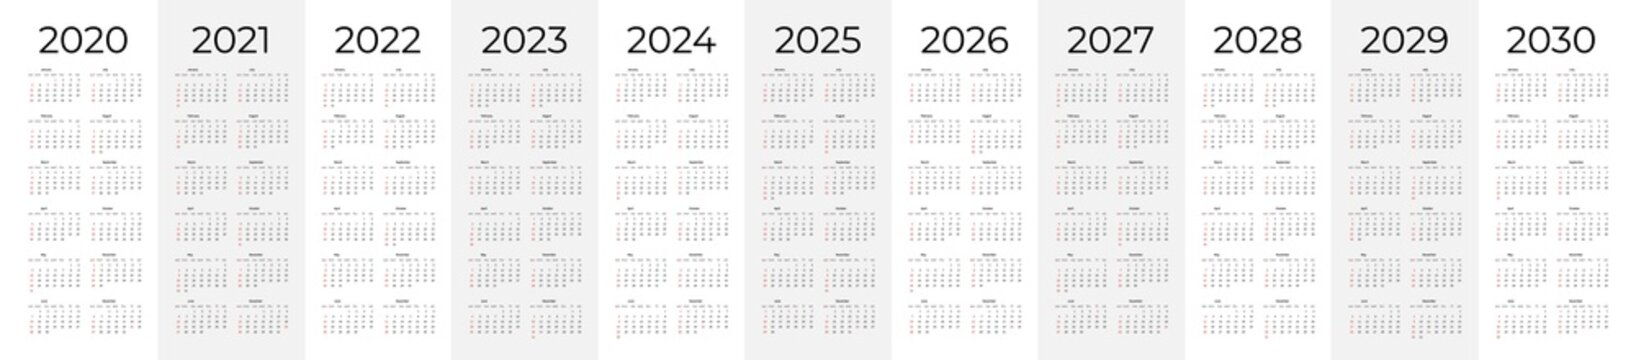 Calendar template set for 2020, 2021, 2022, 2023, 2024, 2025, 2026, 2027, 2028, 2029 and 2030 years. Week starts on Monday. Simple editable vertical vector calender